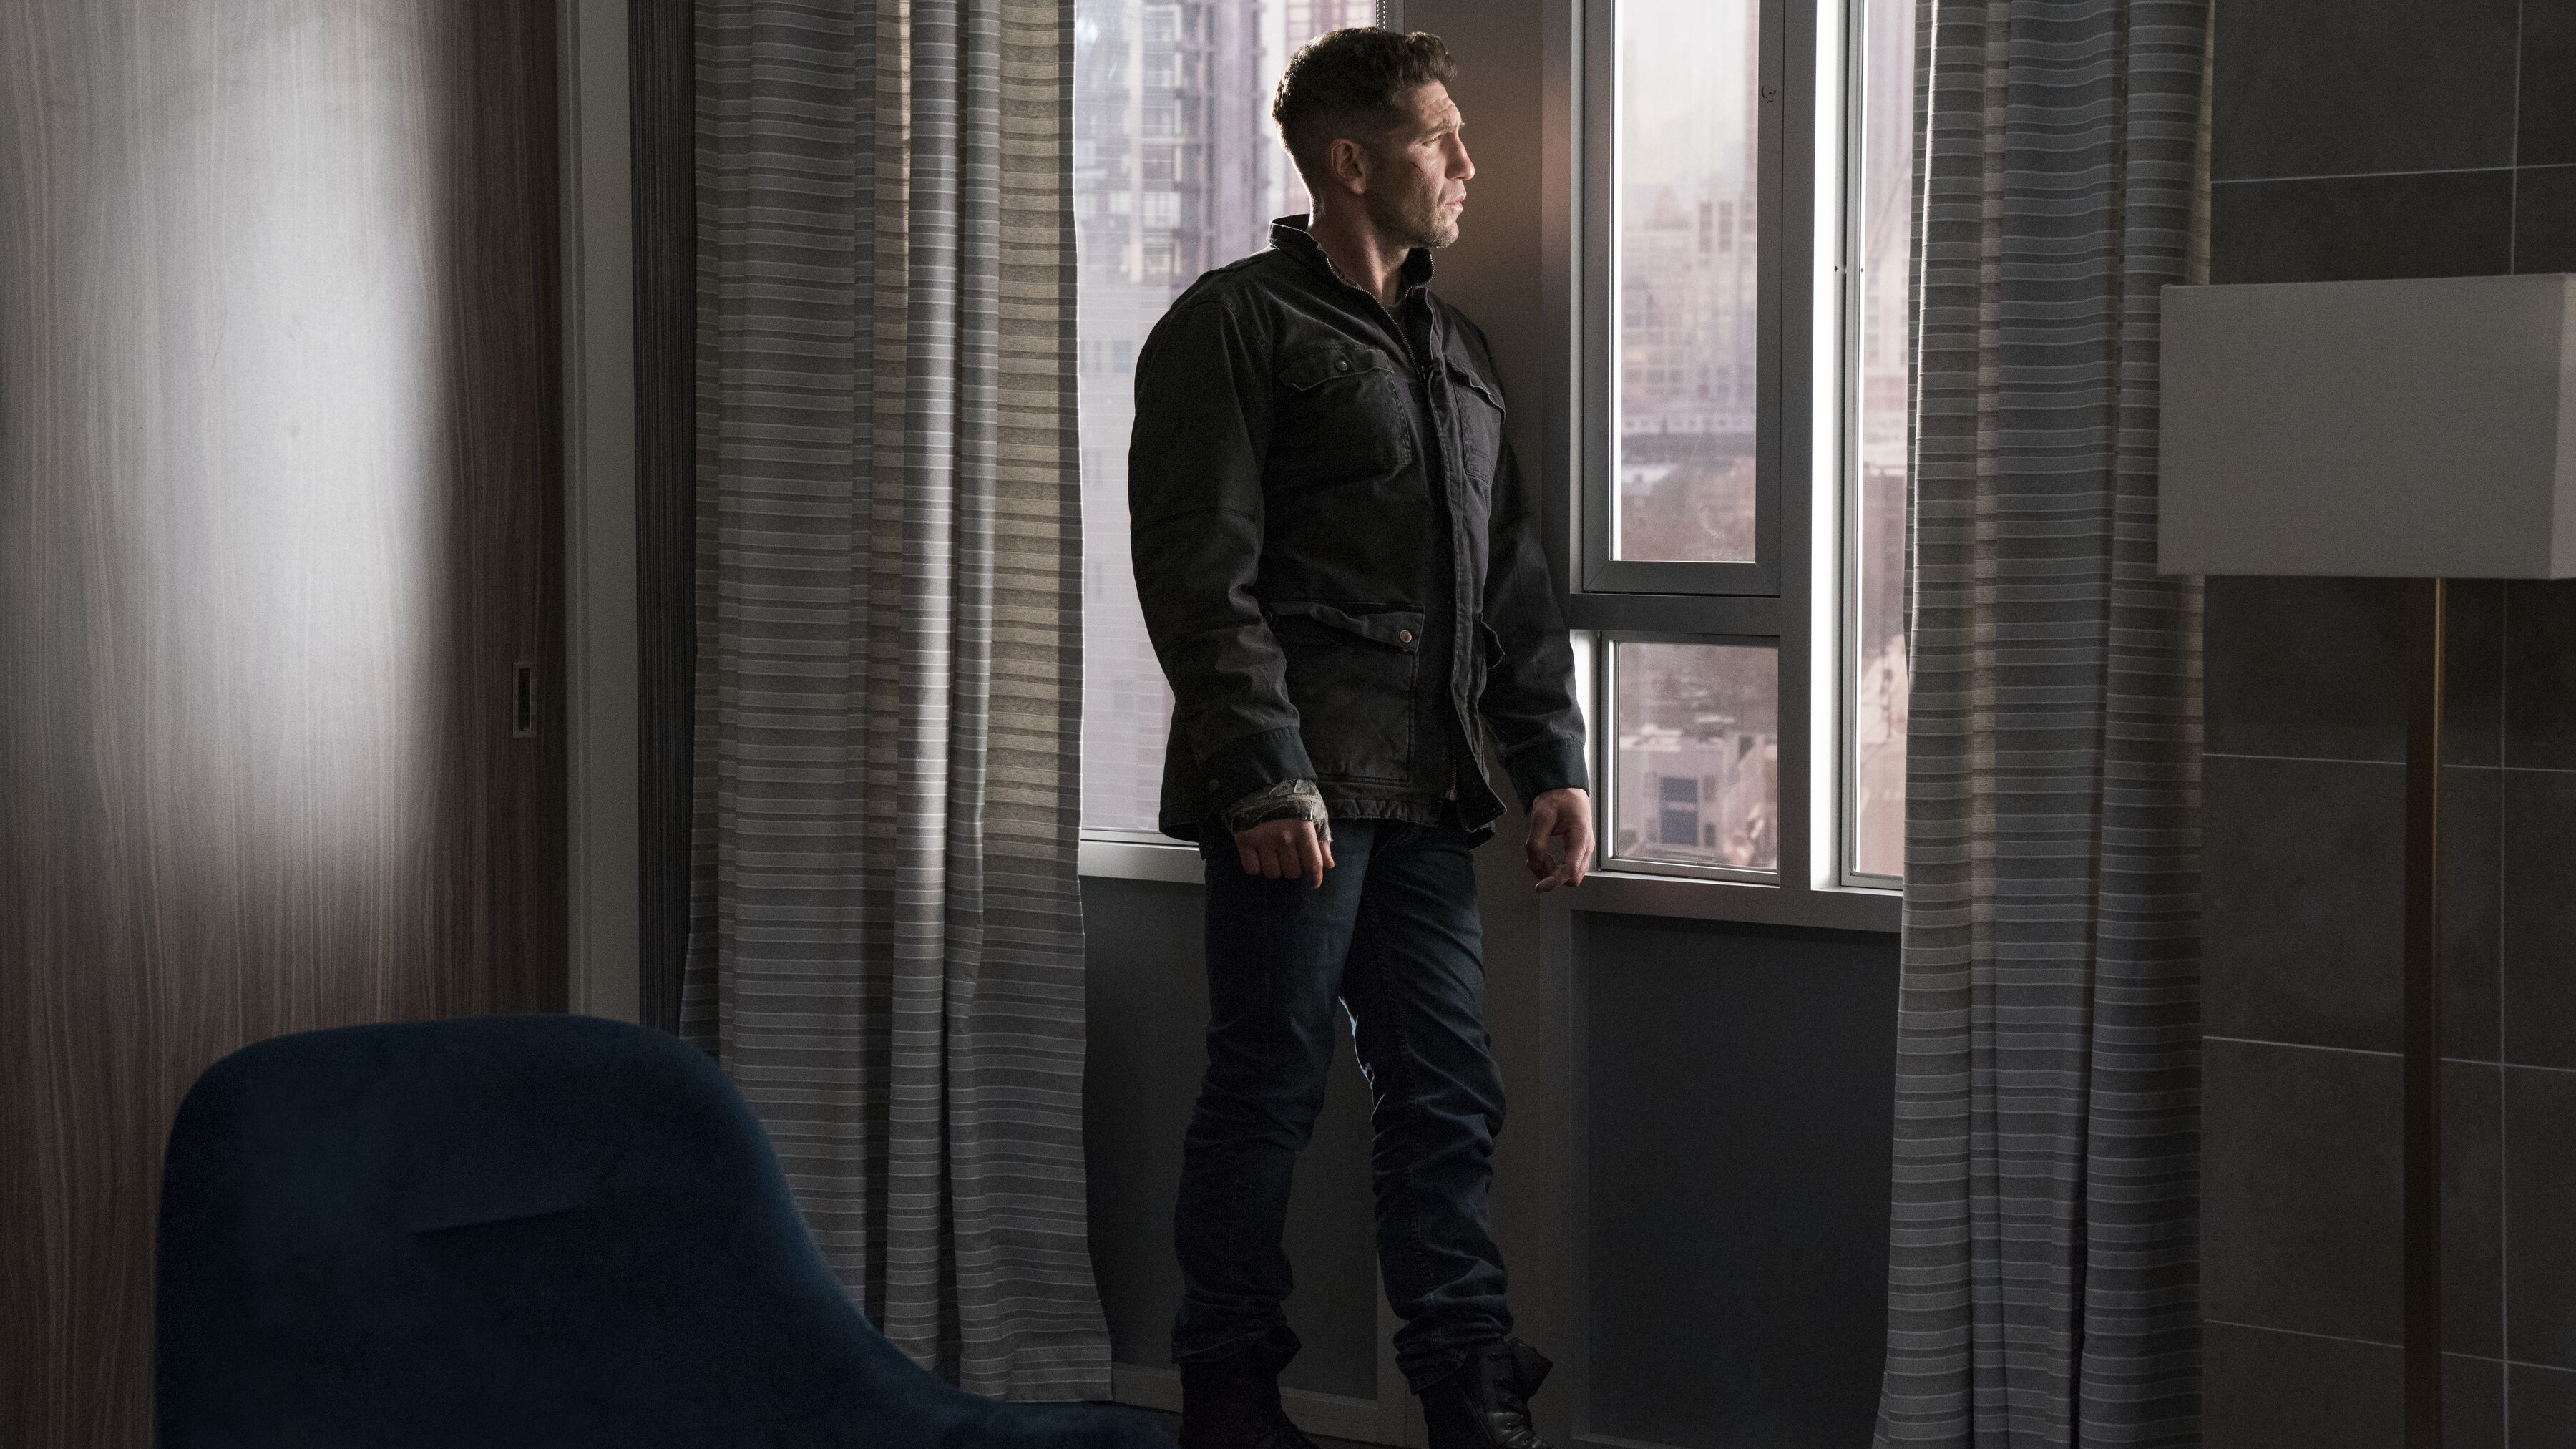 Watch The Punisher Season 2 online: All episodes now